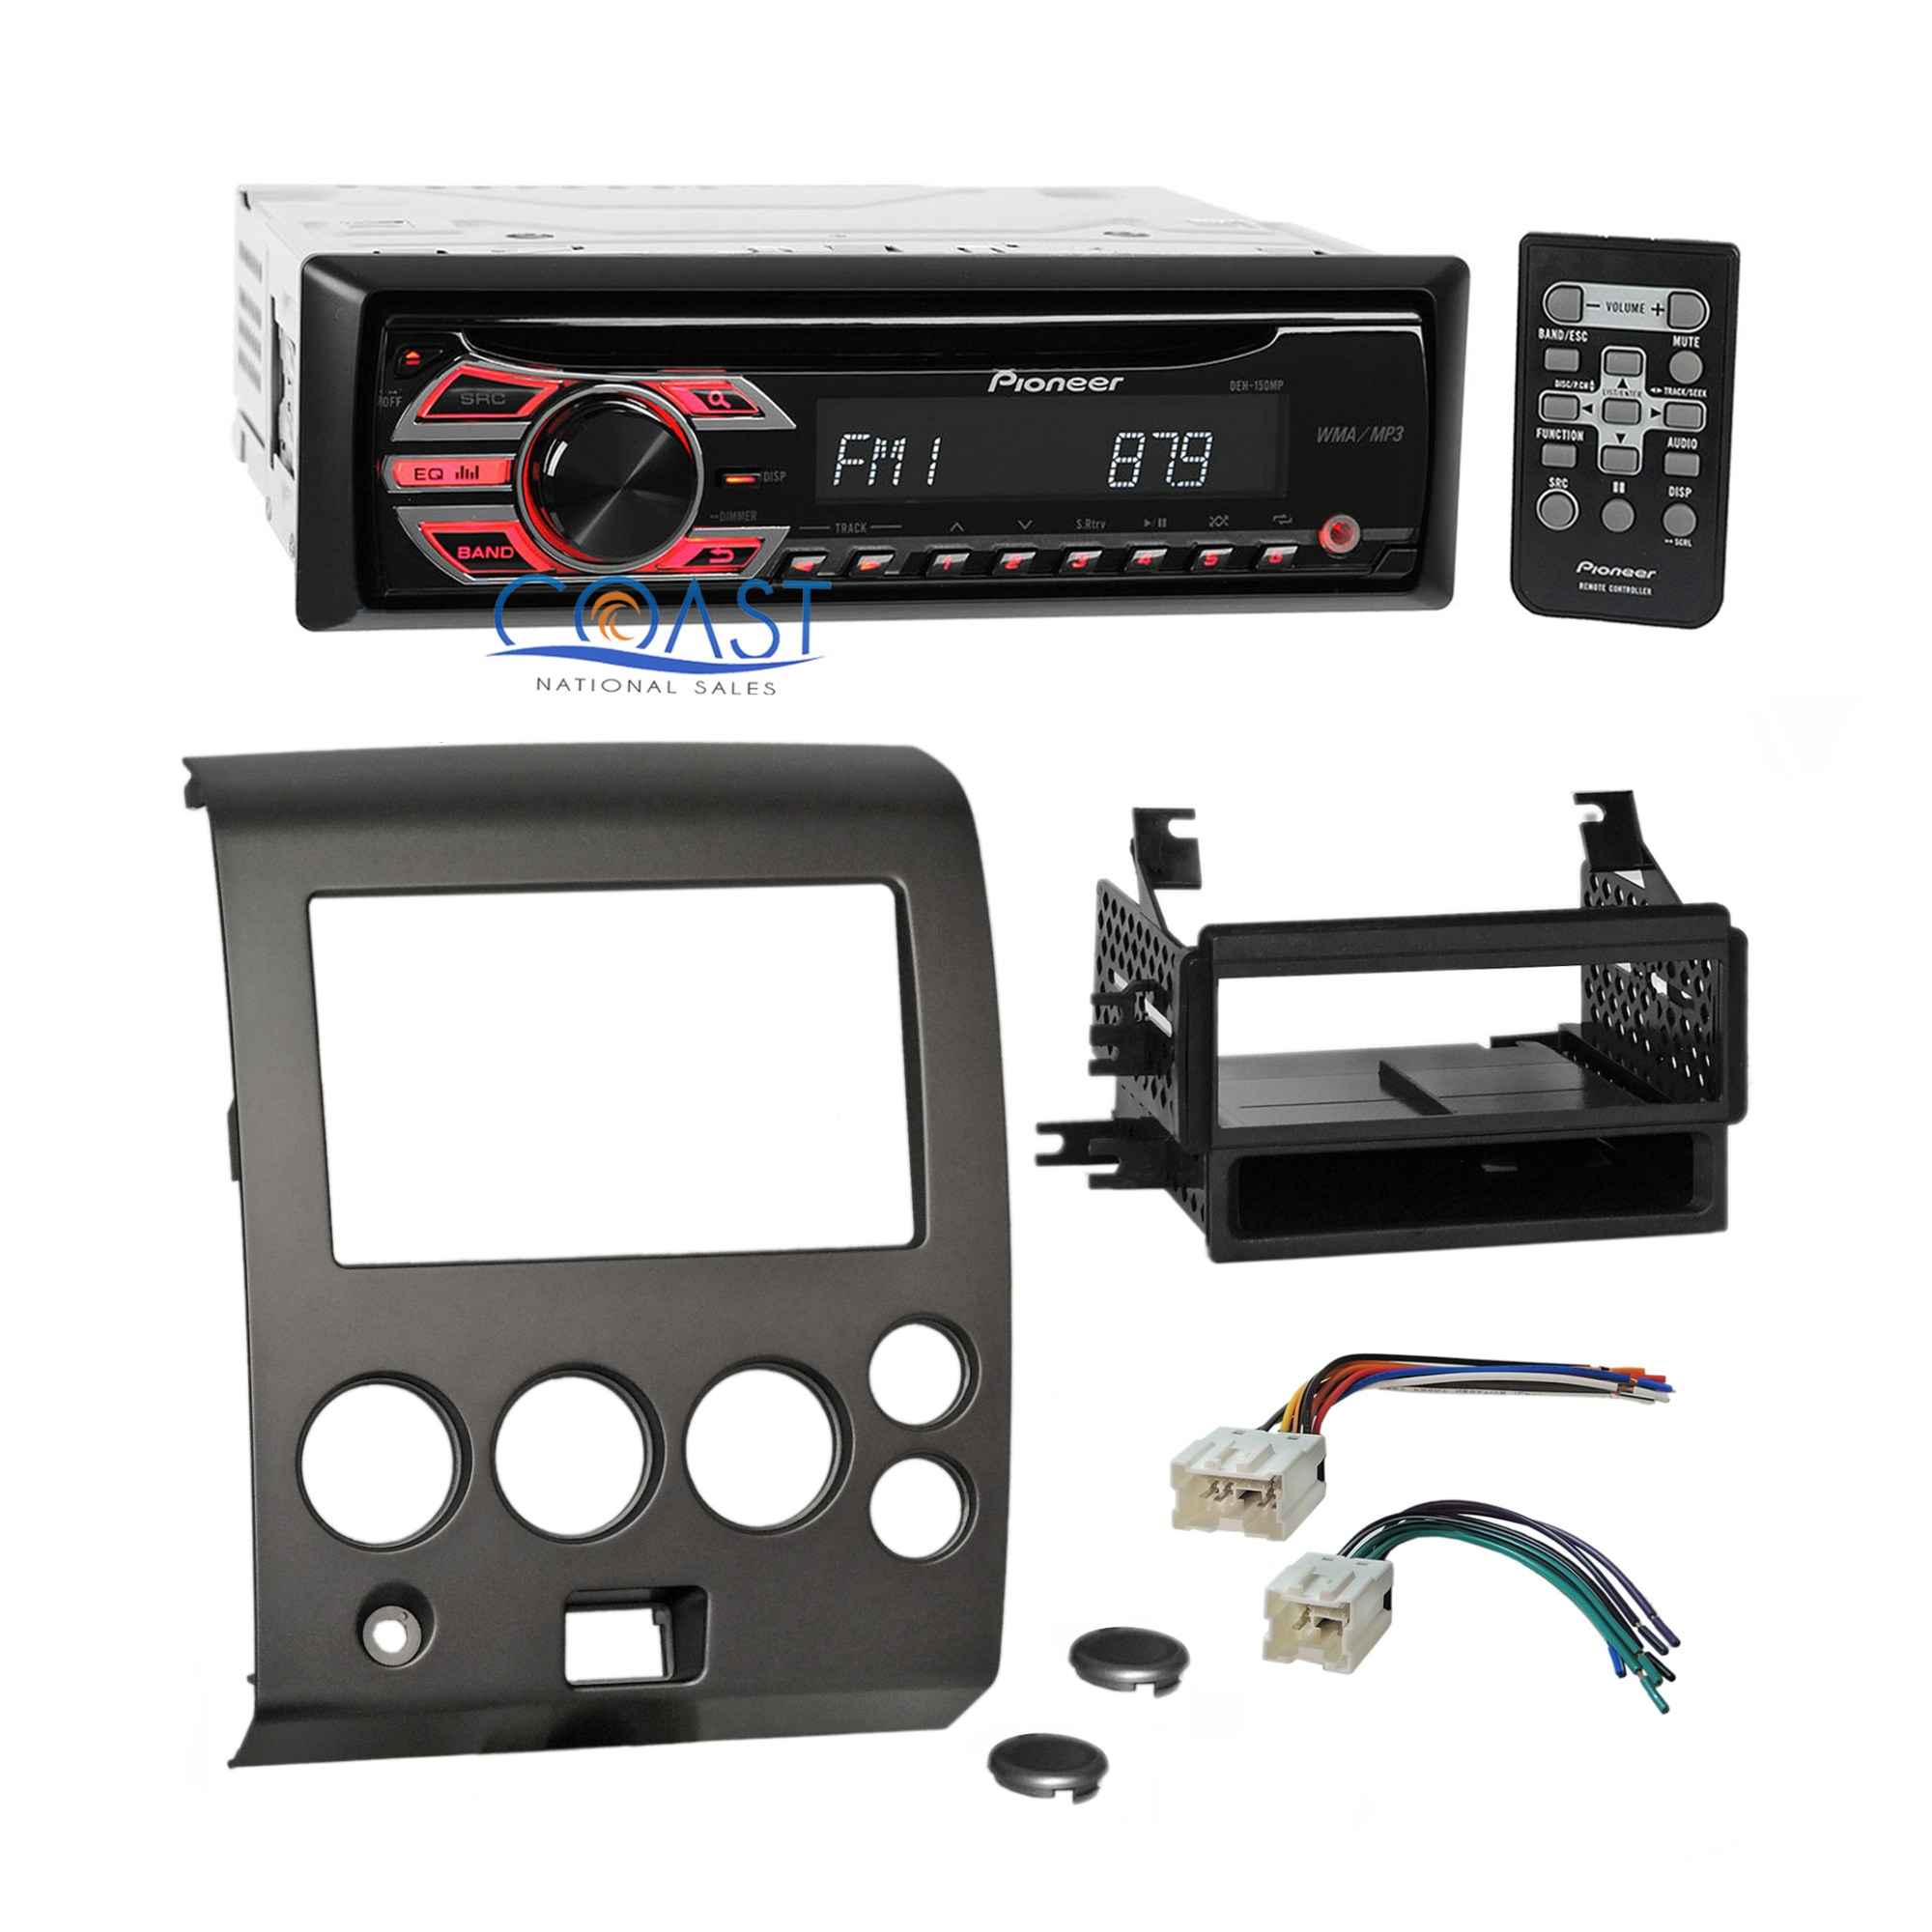 hight resolution of details about pioneer cd mp3 car radio stereo dash kit harness for 2004 nissan armada titan